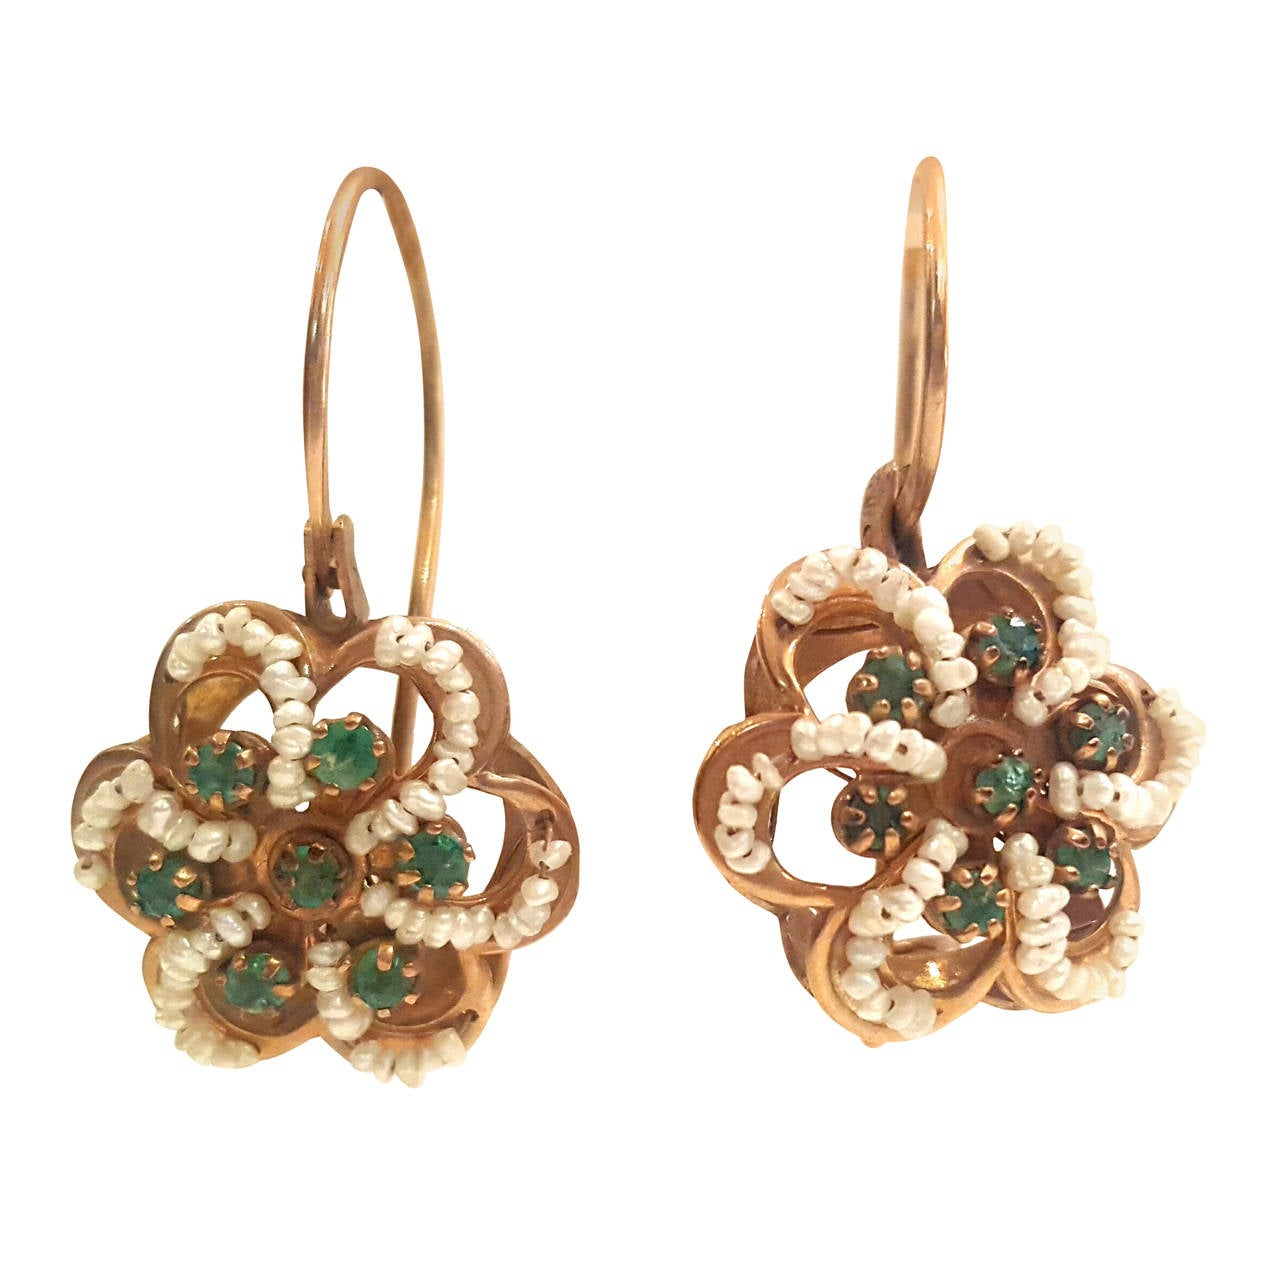 1950s 12kt gold earrings with pearls and emerald for sale